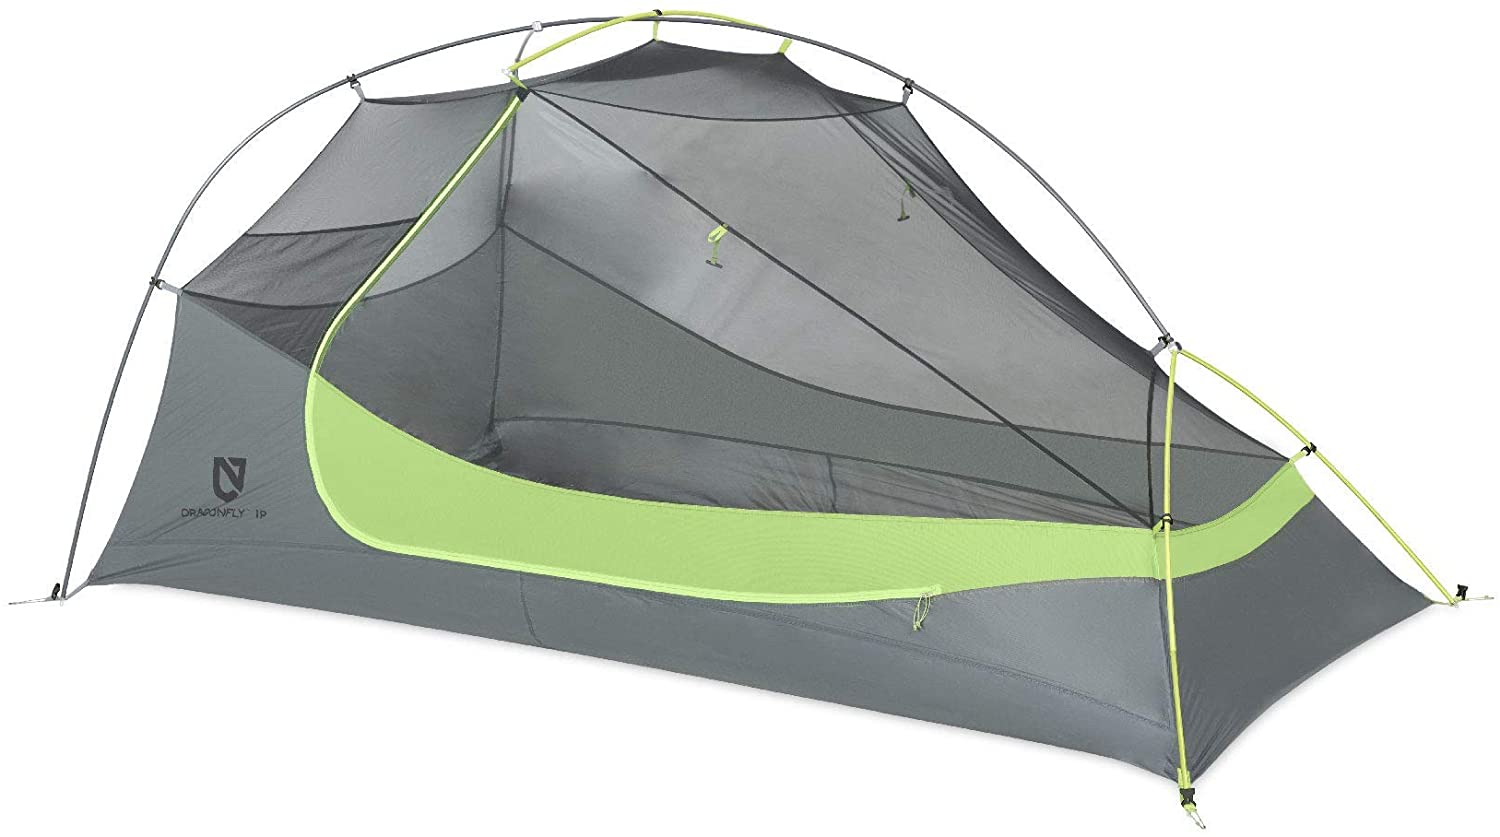 Nemo Dragonfly Ultralight 1 Person Backpacking Tent